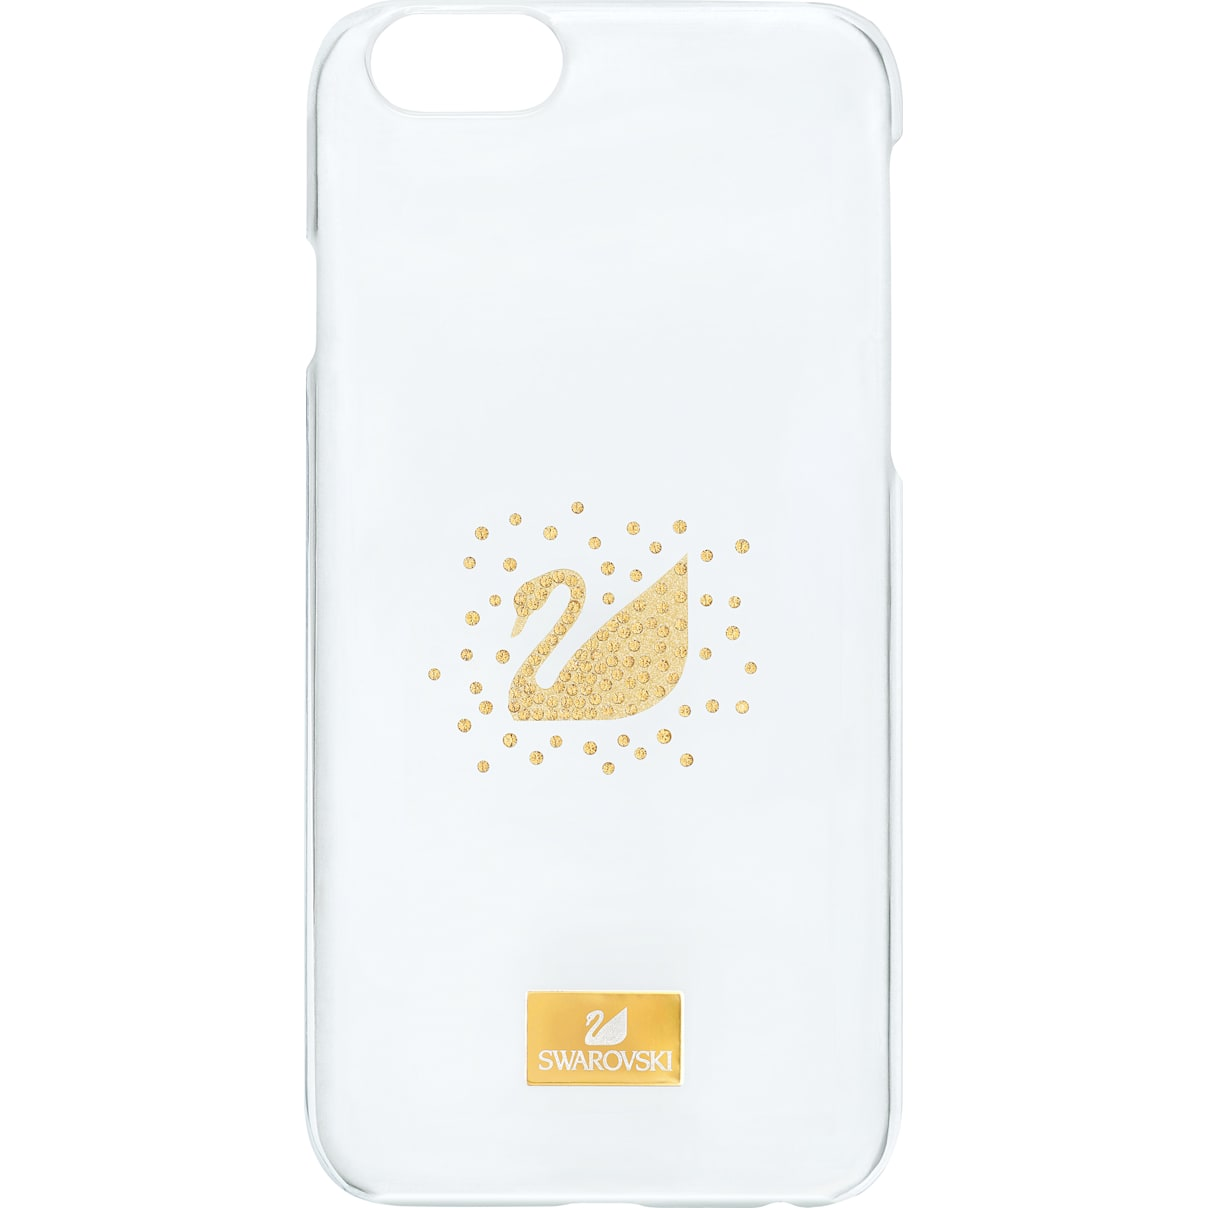 Swarovski Swan Smartphone Case with Bumper, iPhone® 6